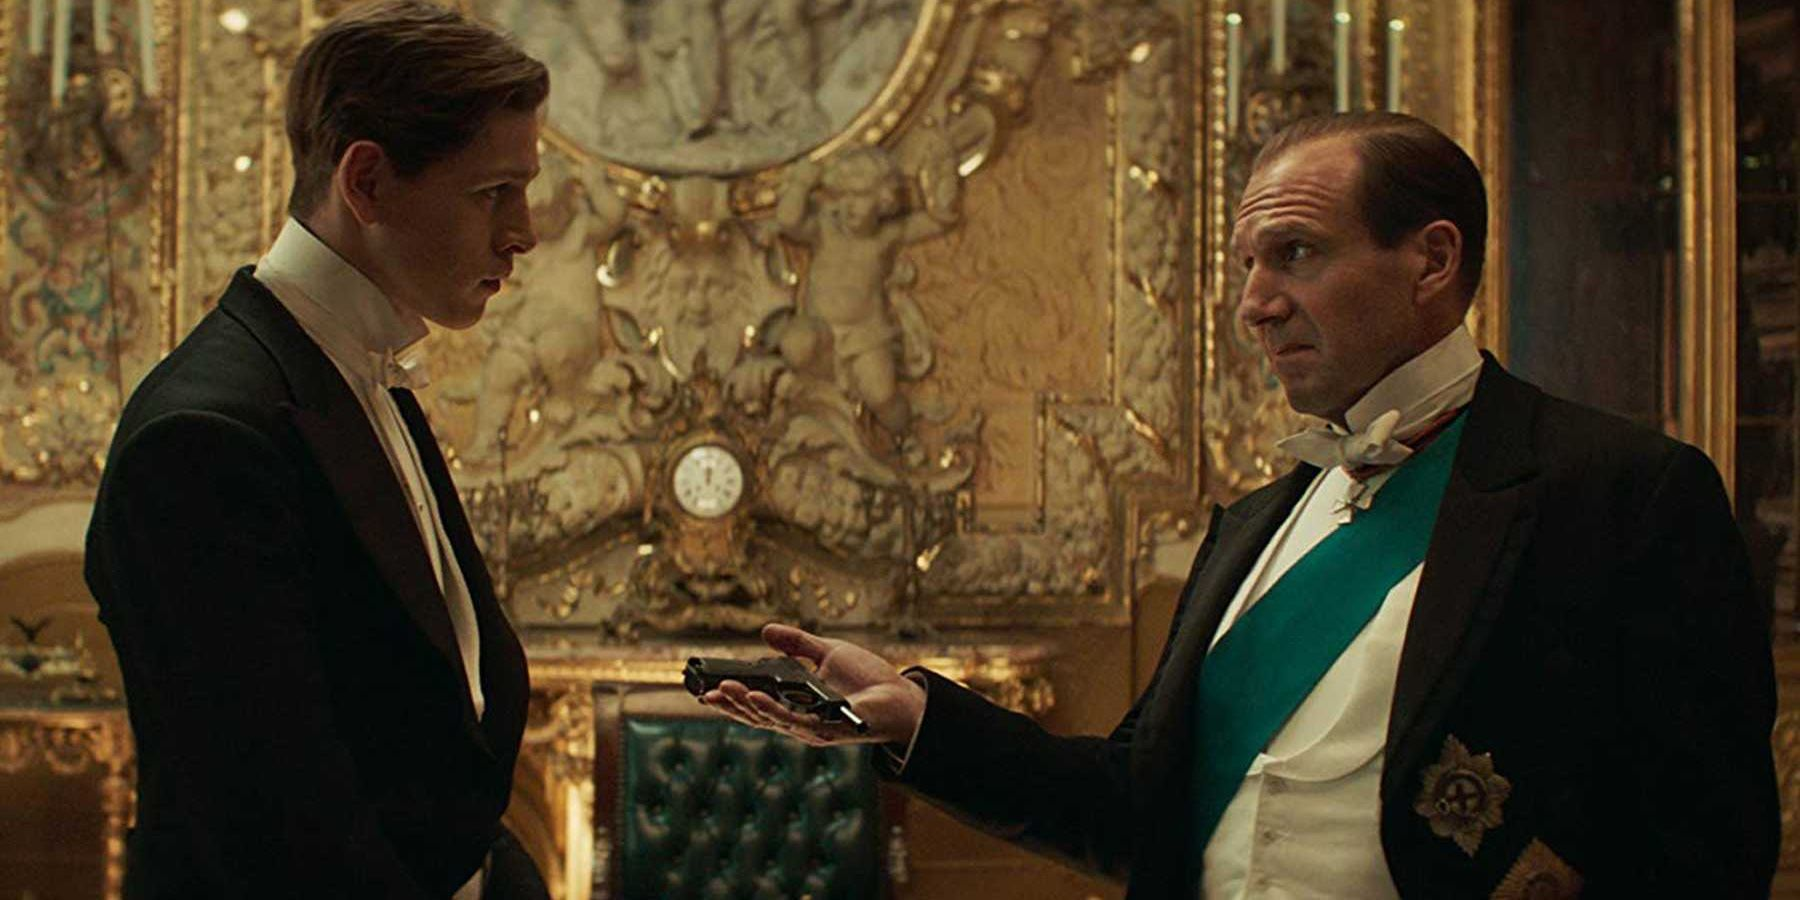 The King's Man Director Says the Prequel Sets the Stage for Kingsman 3